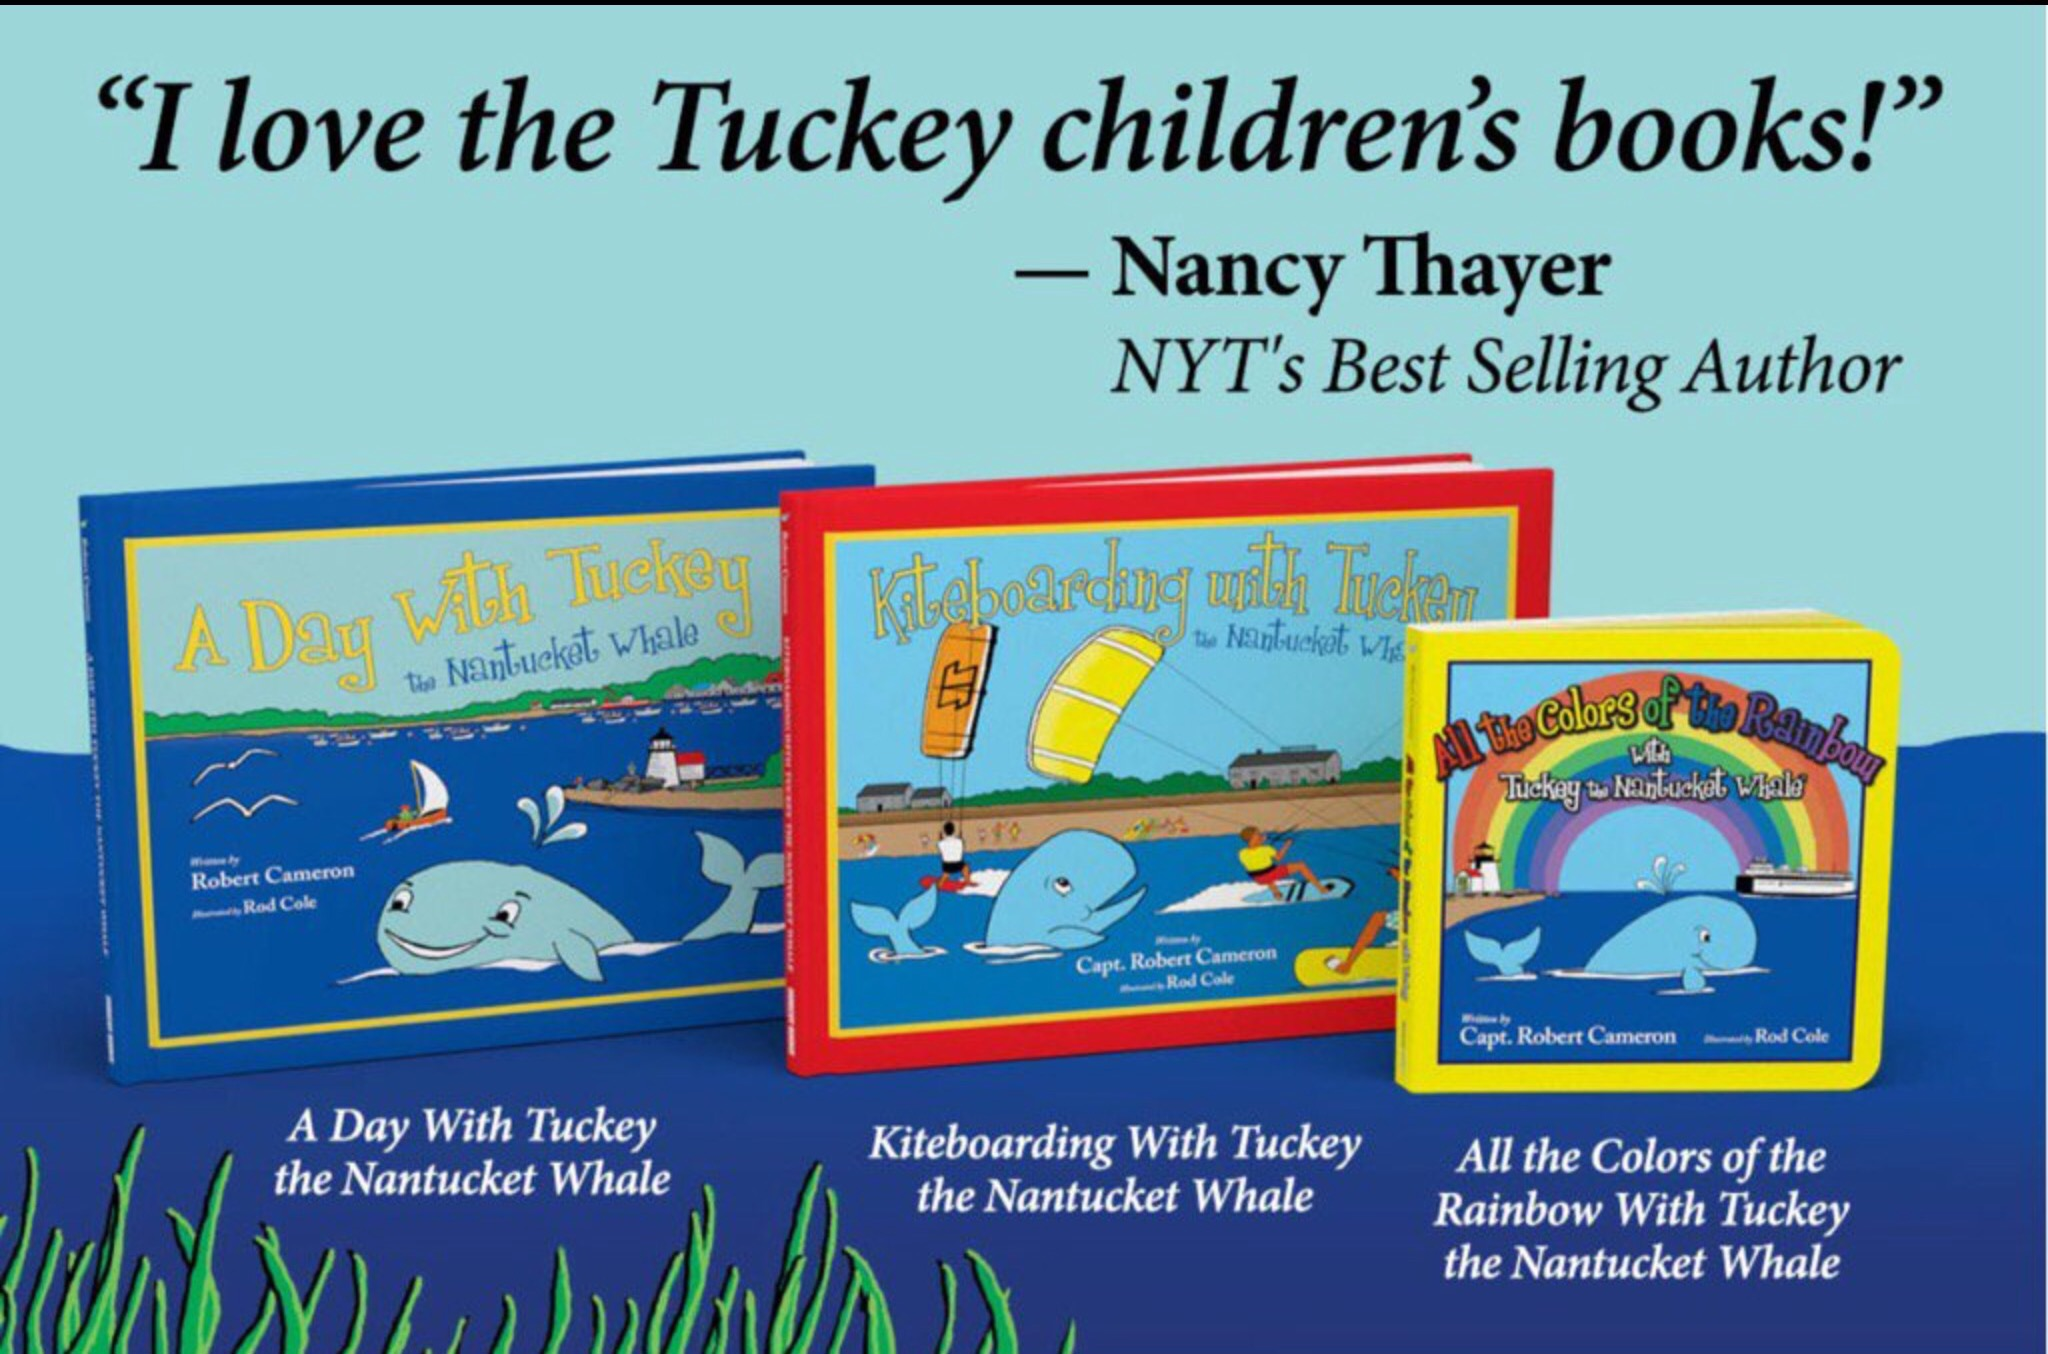 New York Times Best Selling Author loves Tuckey Books